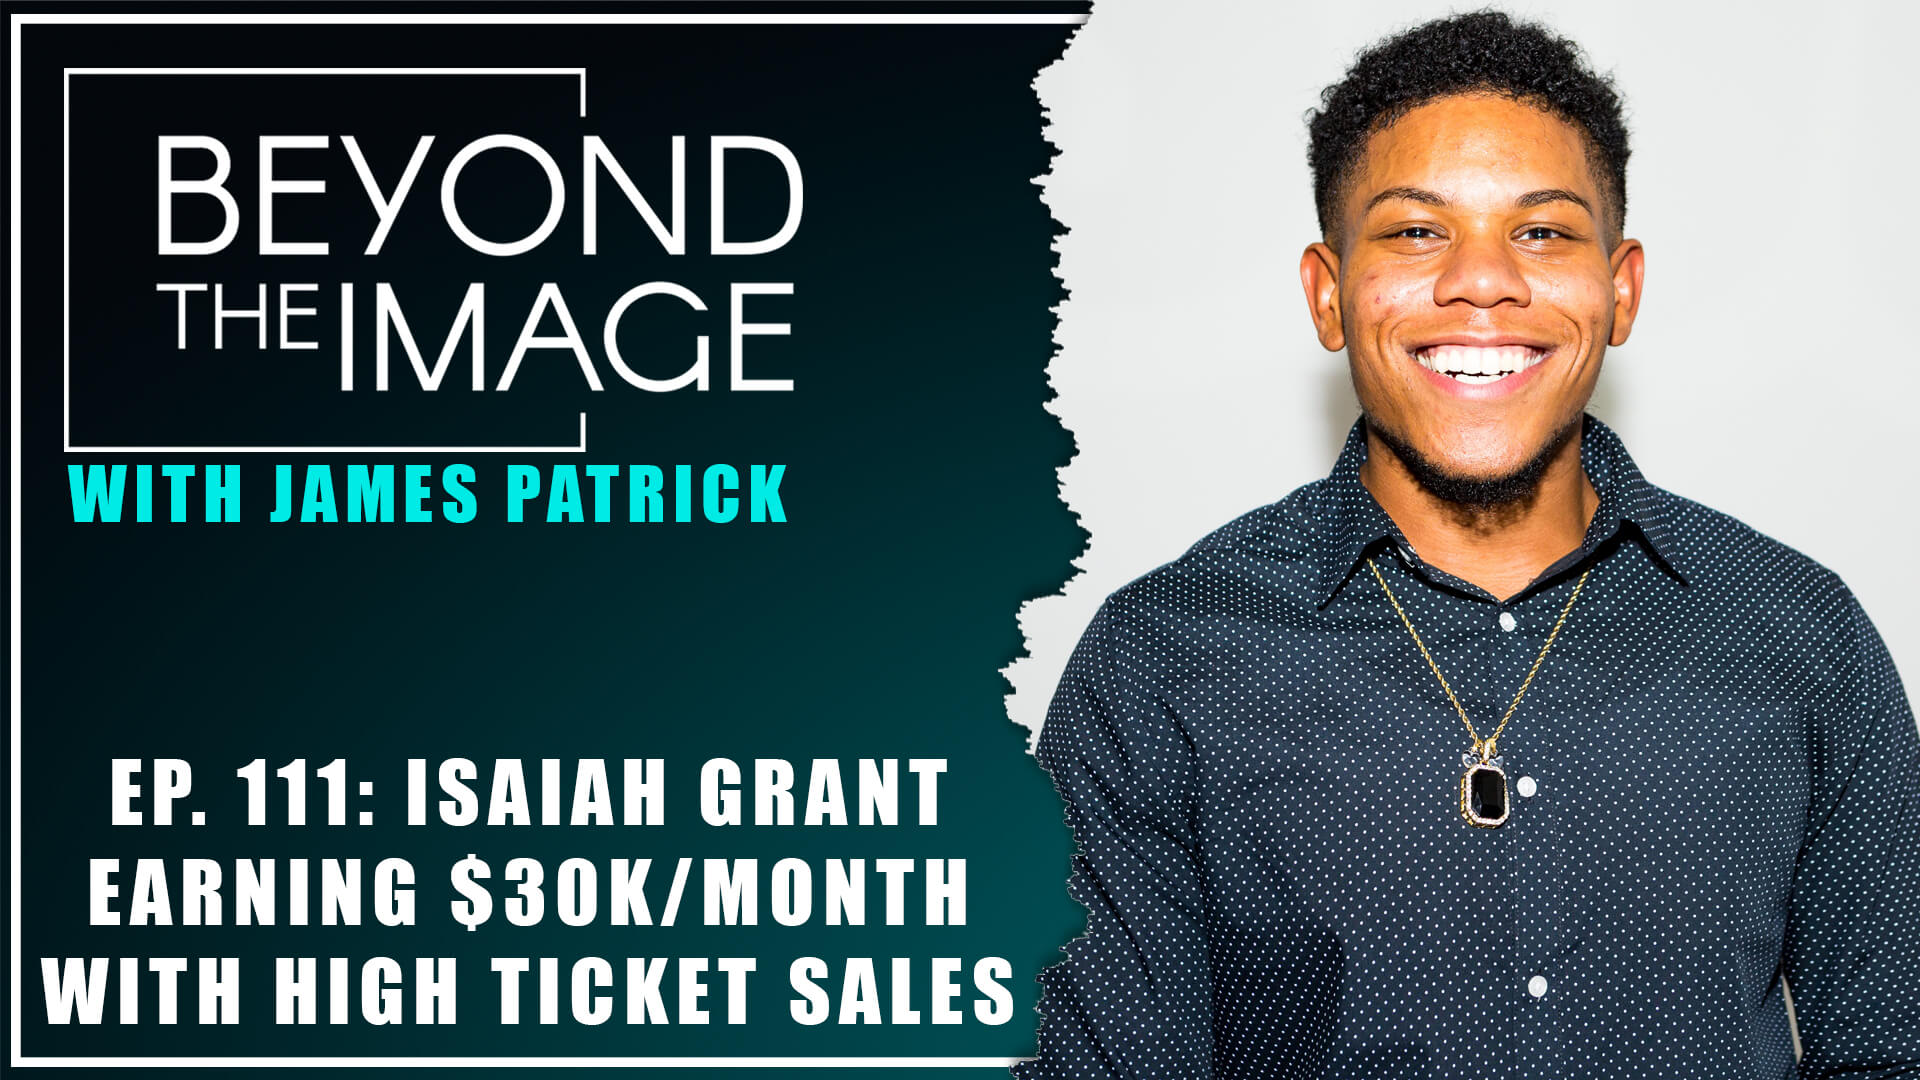 BTI #111: Earn Upwards of $30K/Month Using High Ticket Sales with Isaiah Grant